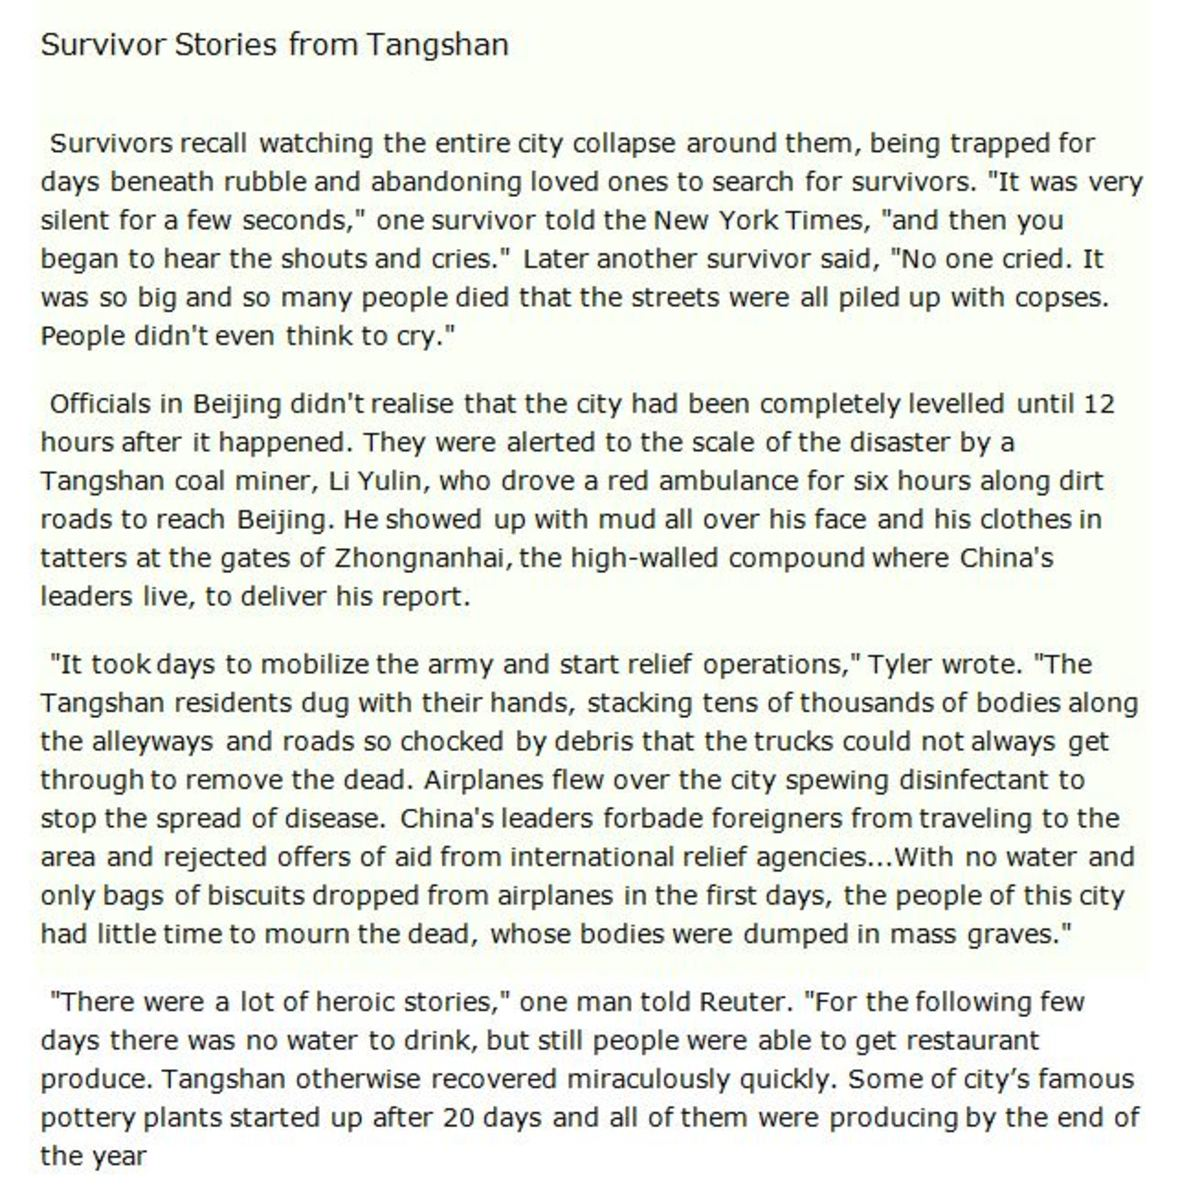 Survivor Stories from Tangshan